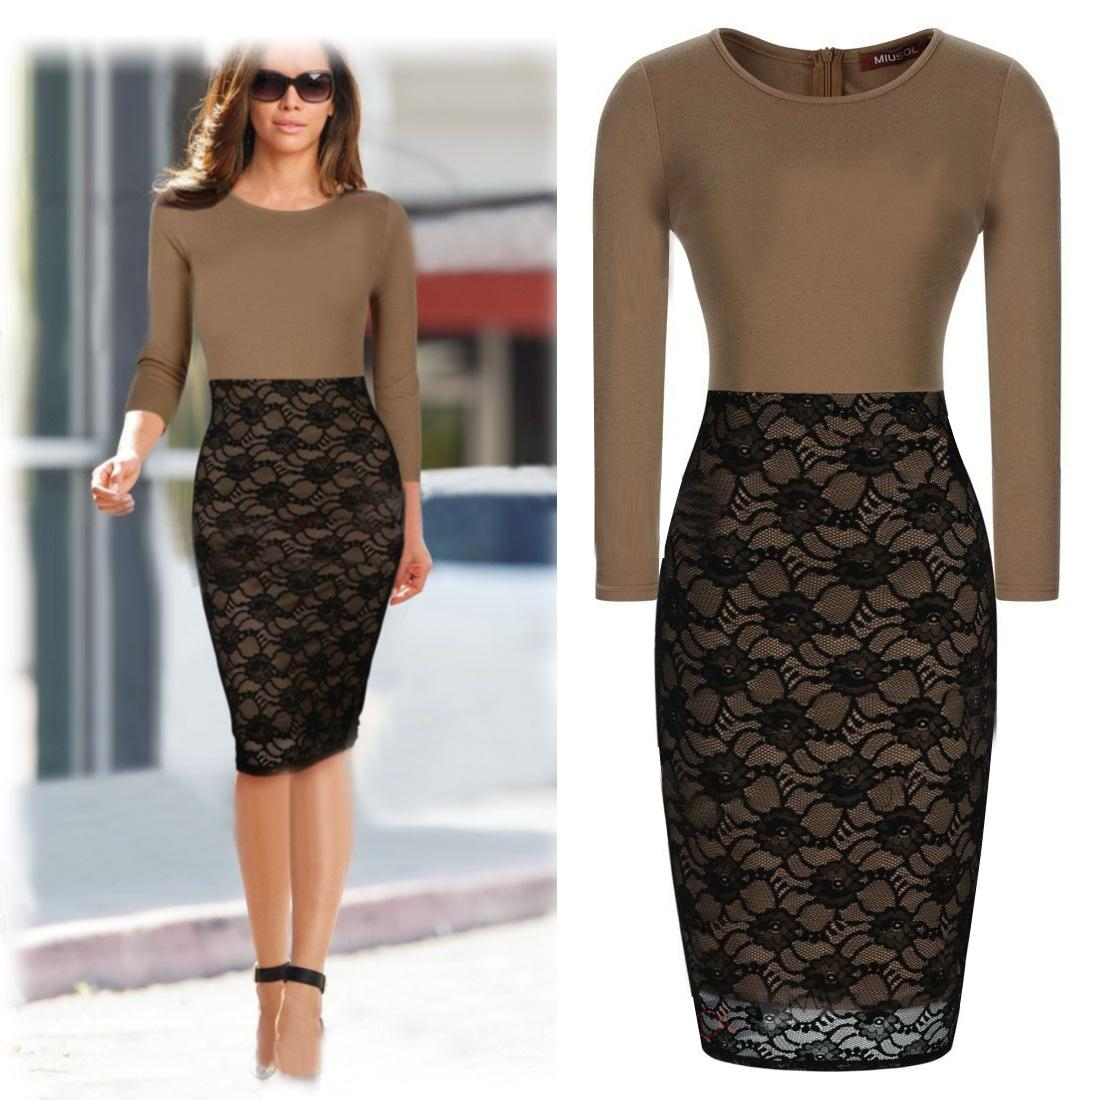 Dress women work wear lace office dress long sleeve dresses dk3018c